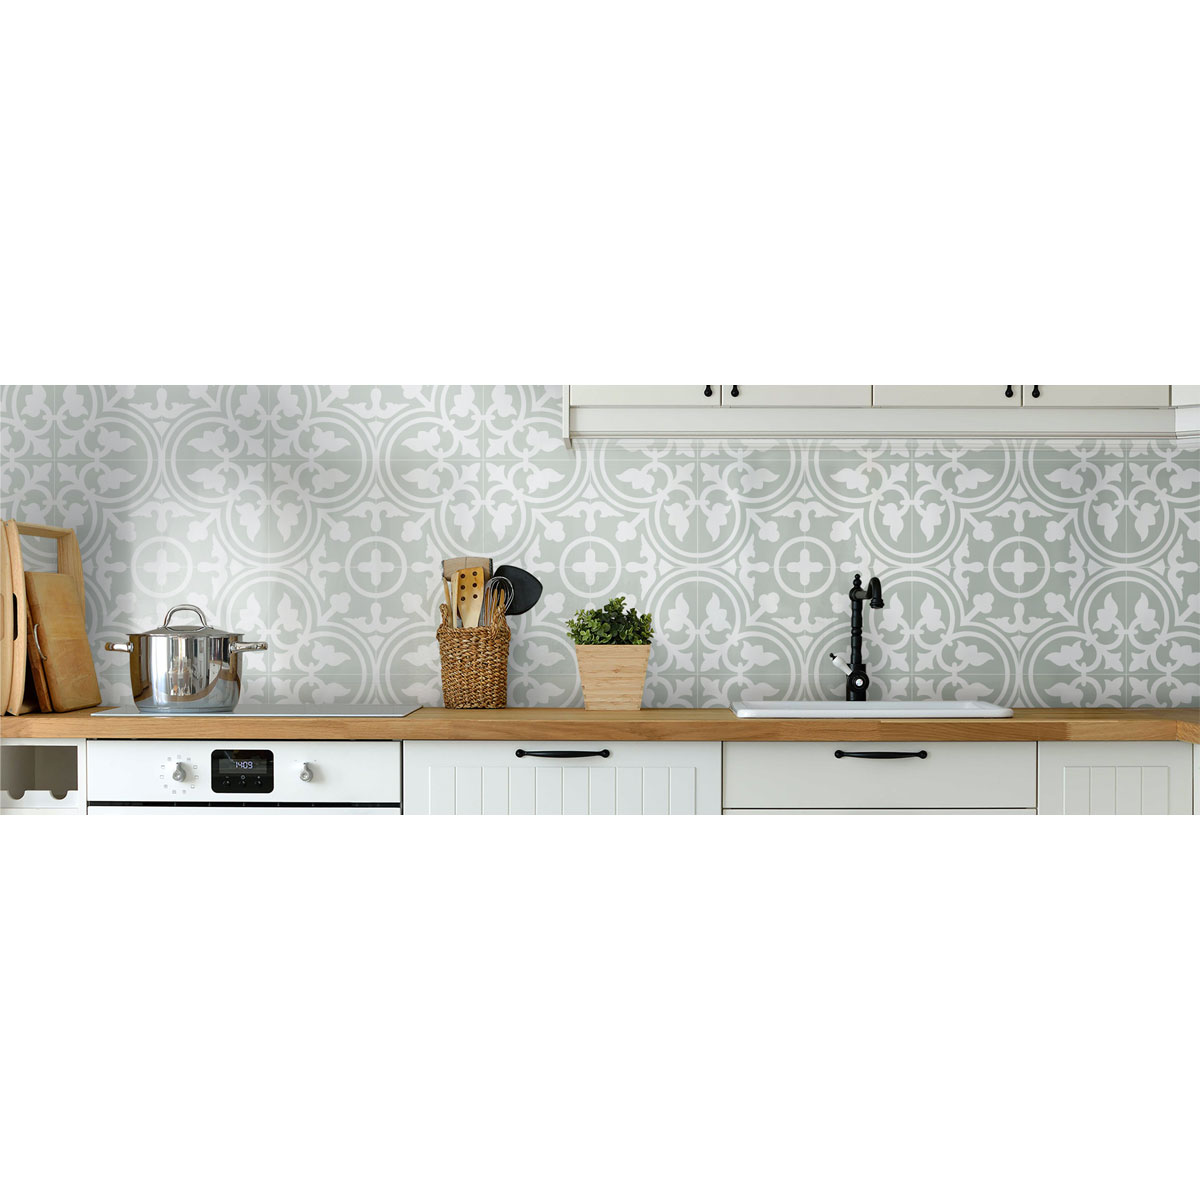 Picasso Evolution - Shadow Pale Green - Patterned Tiles - Stone3 Brisbane